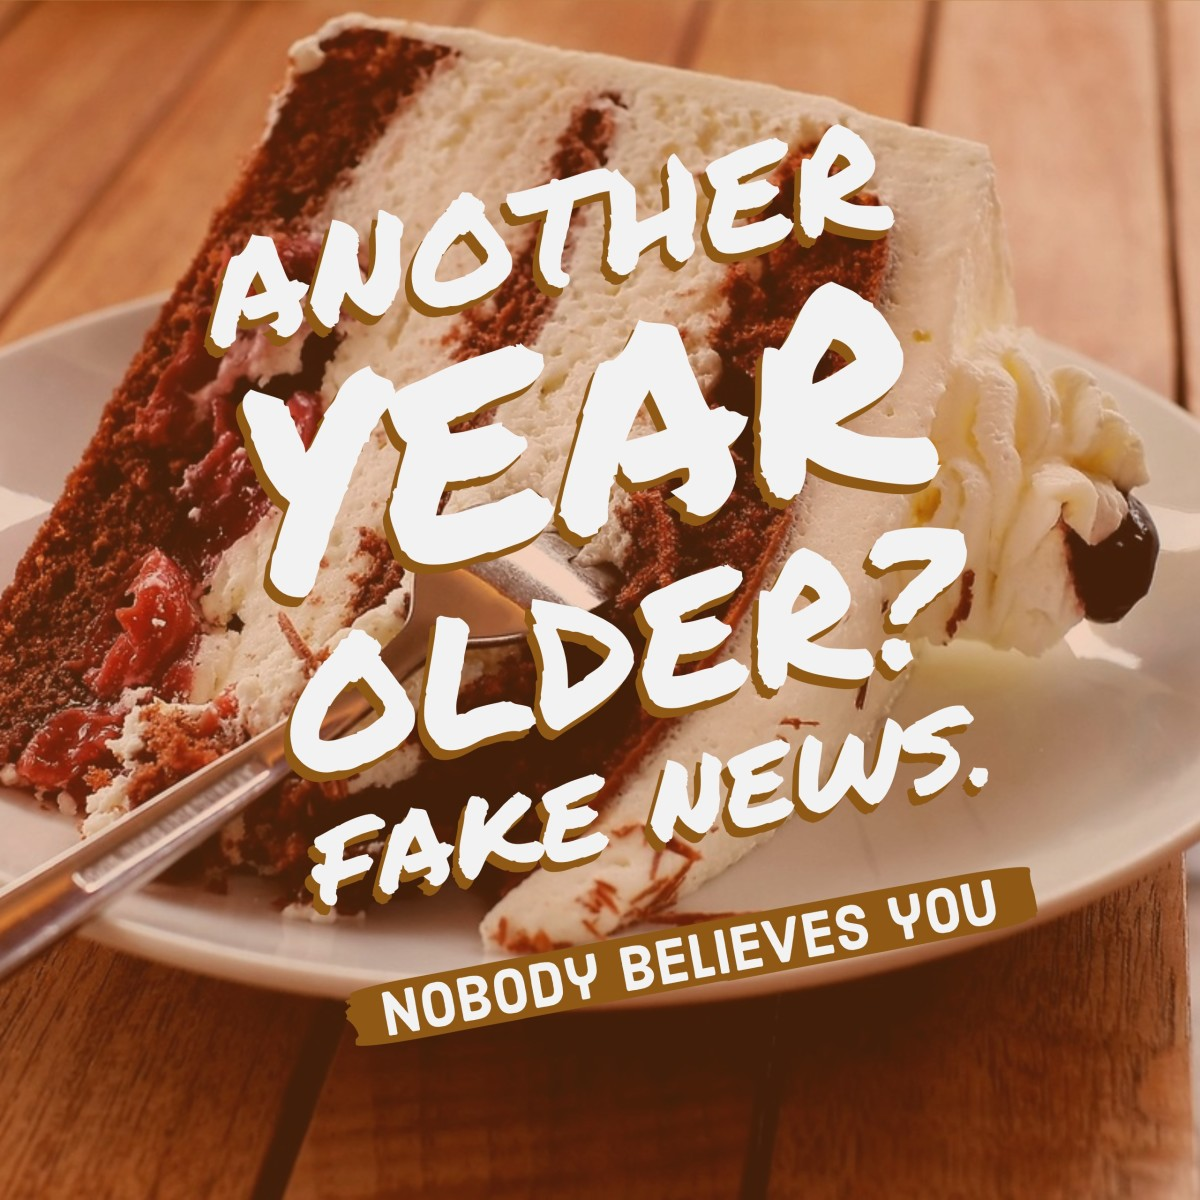 Another year older? Fake news. Words to put on a cake.